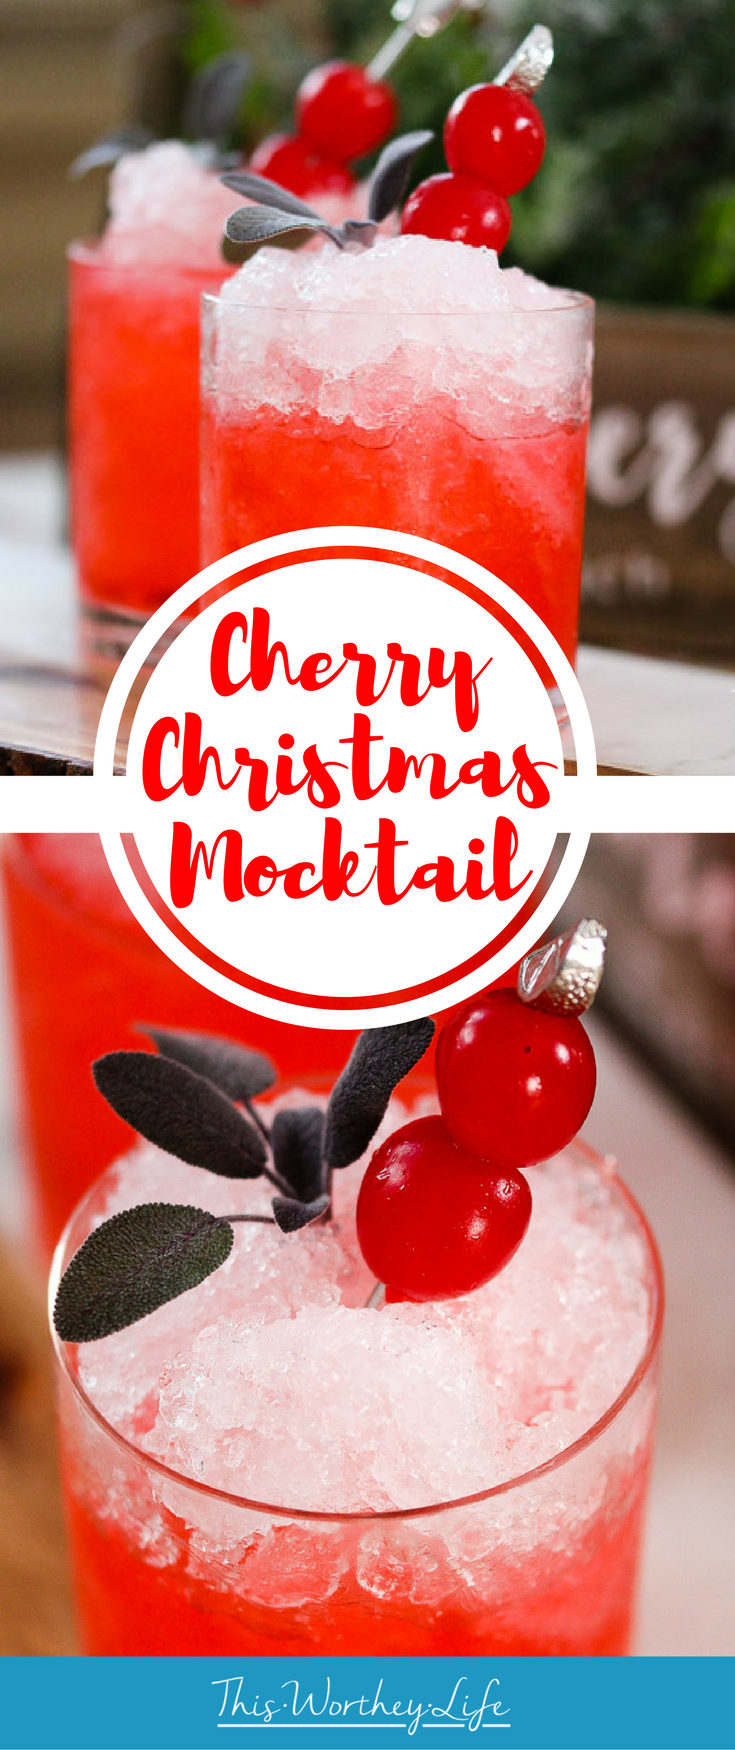 Get Christmas in a cup with our Cherry Christmas mocktail idea. Filled with cherry soda, peppermint syrup, and cherries, this frozen drink idea is a great drink idea for your holiday party.